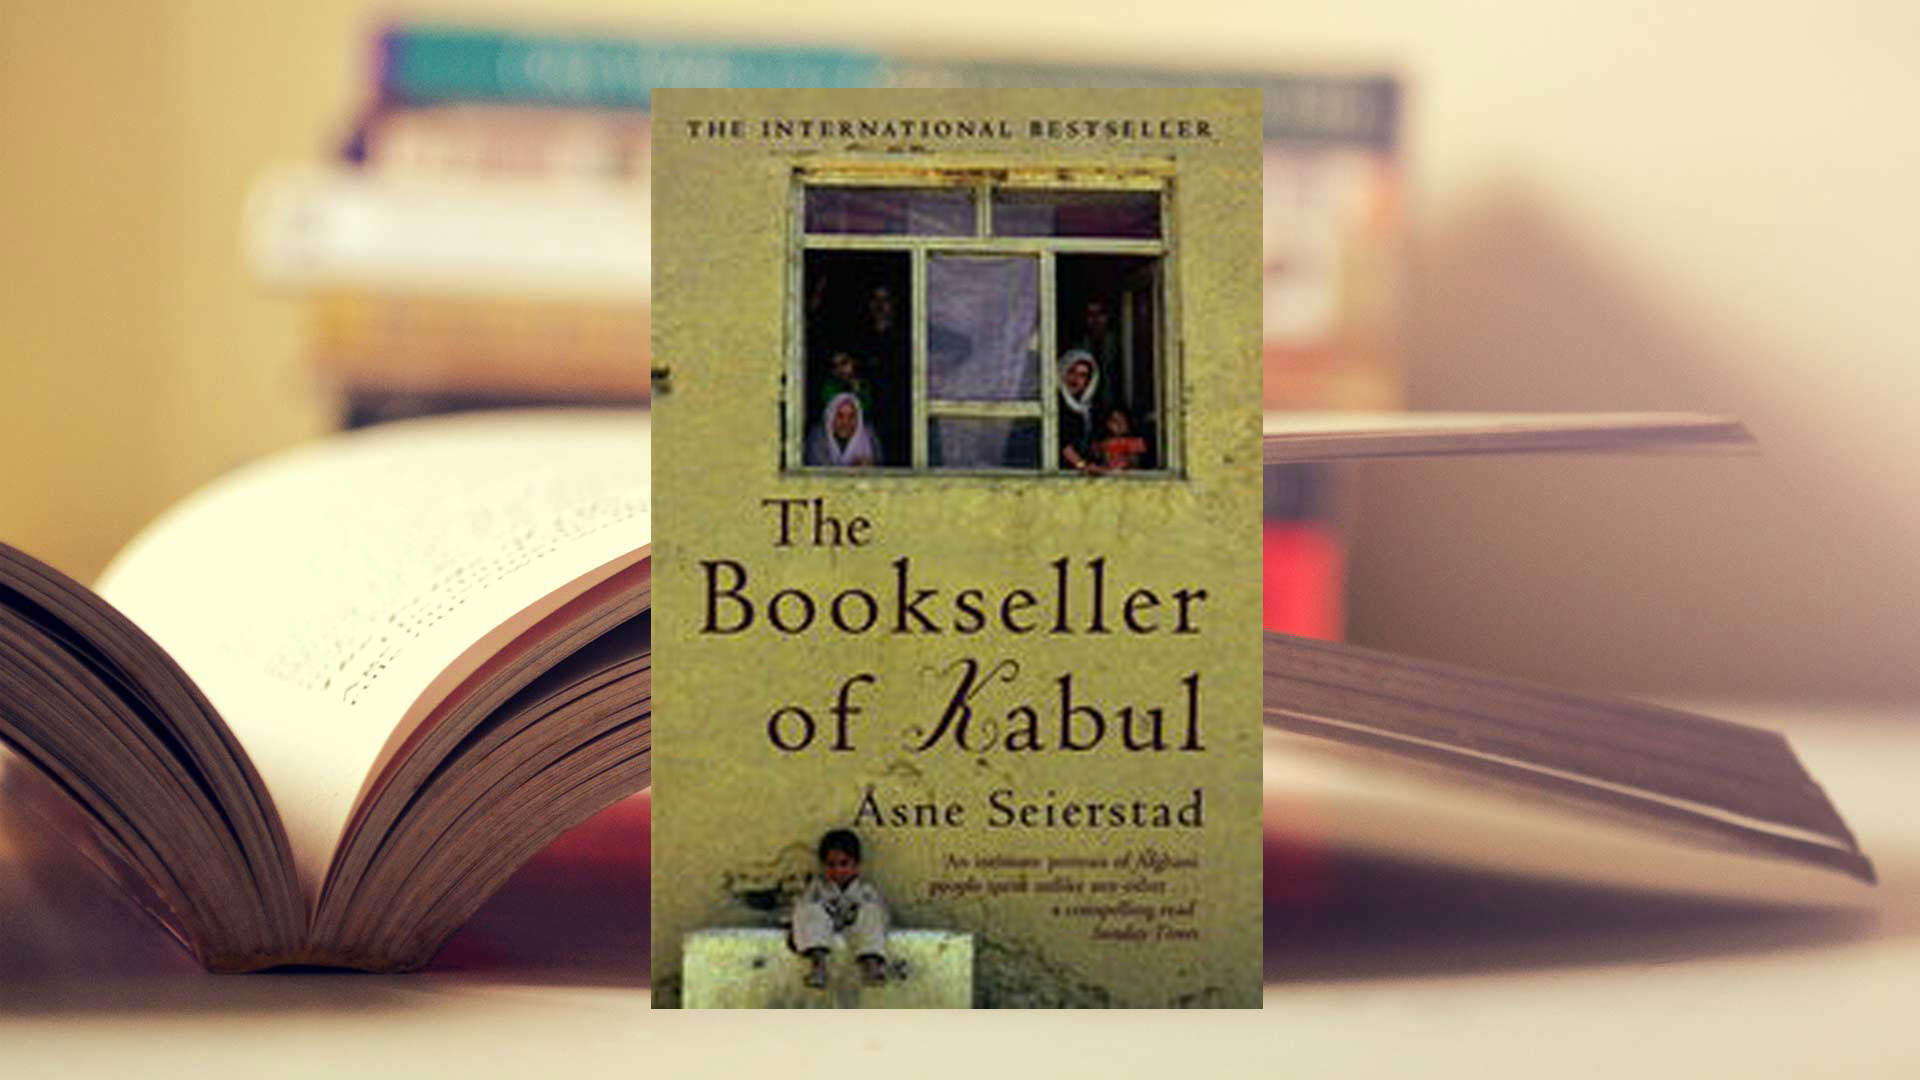 The Bookseller of Kabul by Åsne Seierstad, translated by Ingrid Christophersen